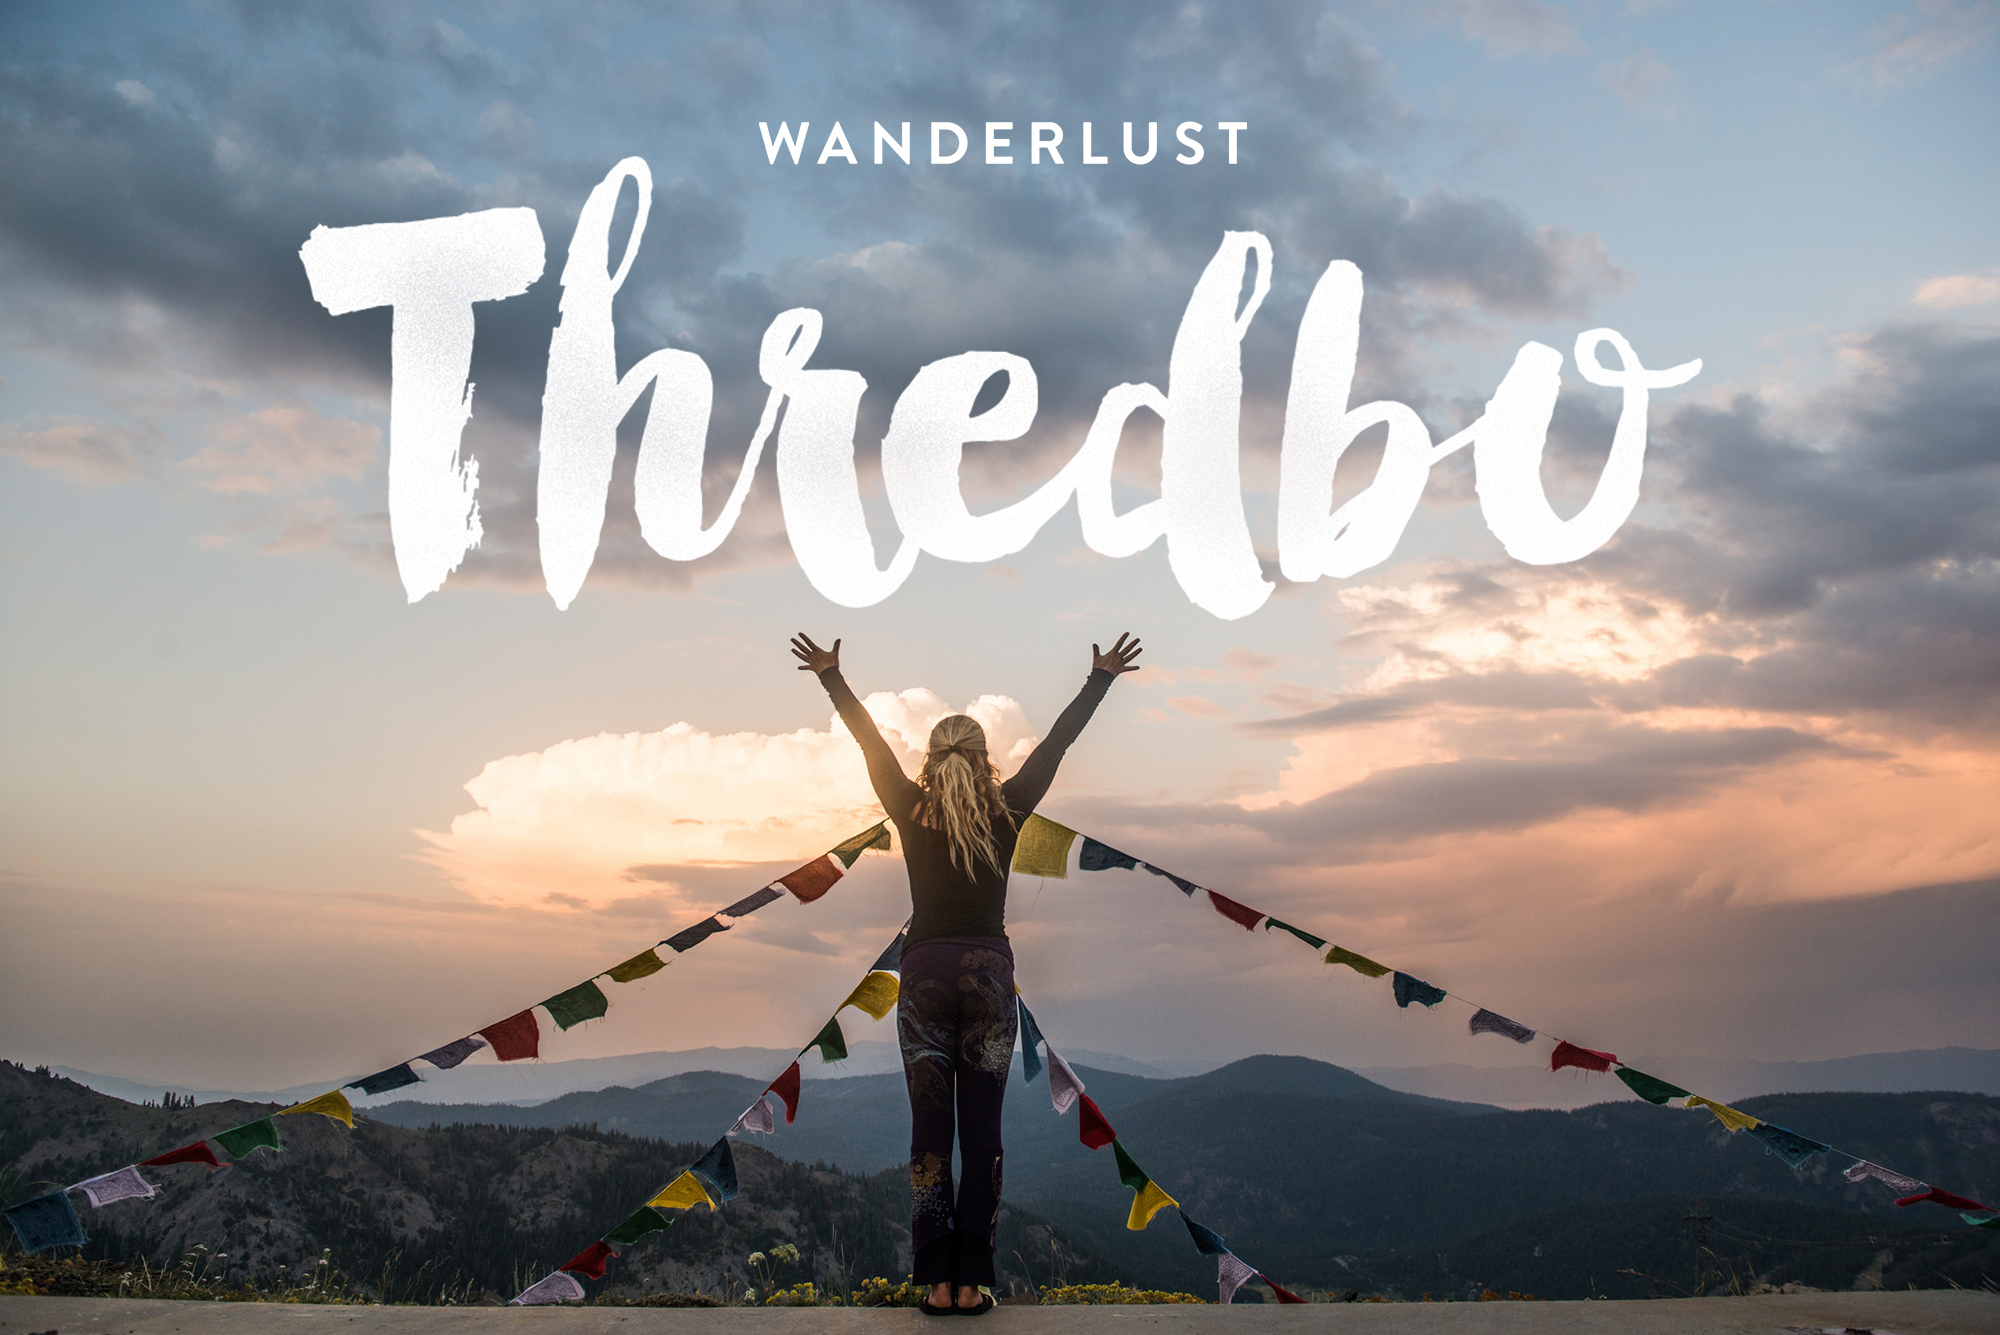 Wanderlust Thredbo February 2016